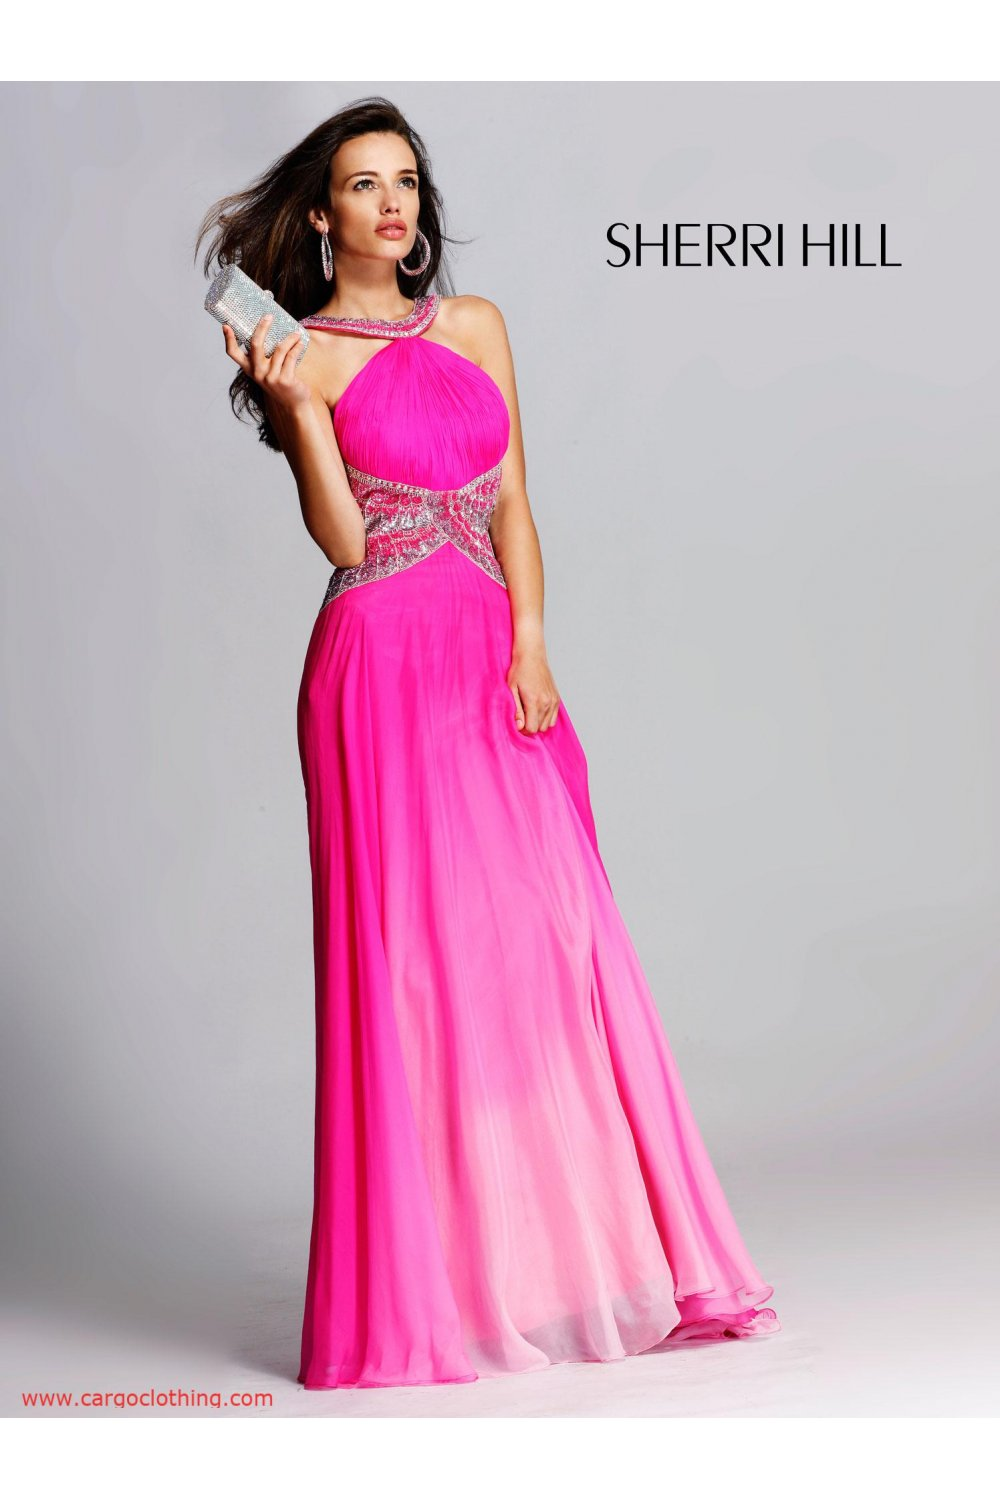 Sherri Hill 2825 open back long dress. UK stock and reduced in Sale